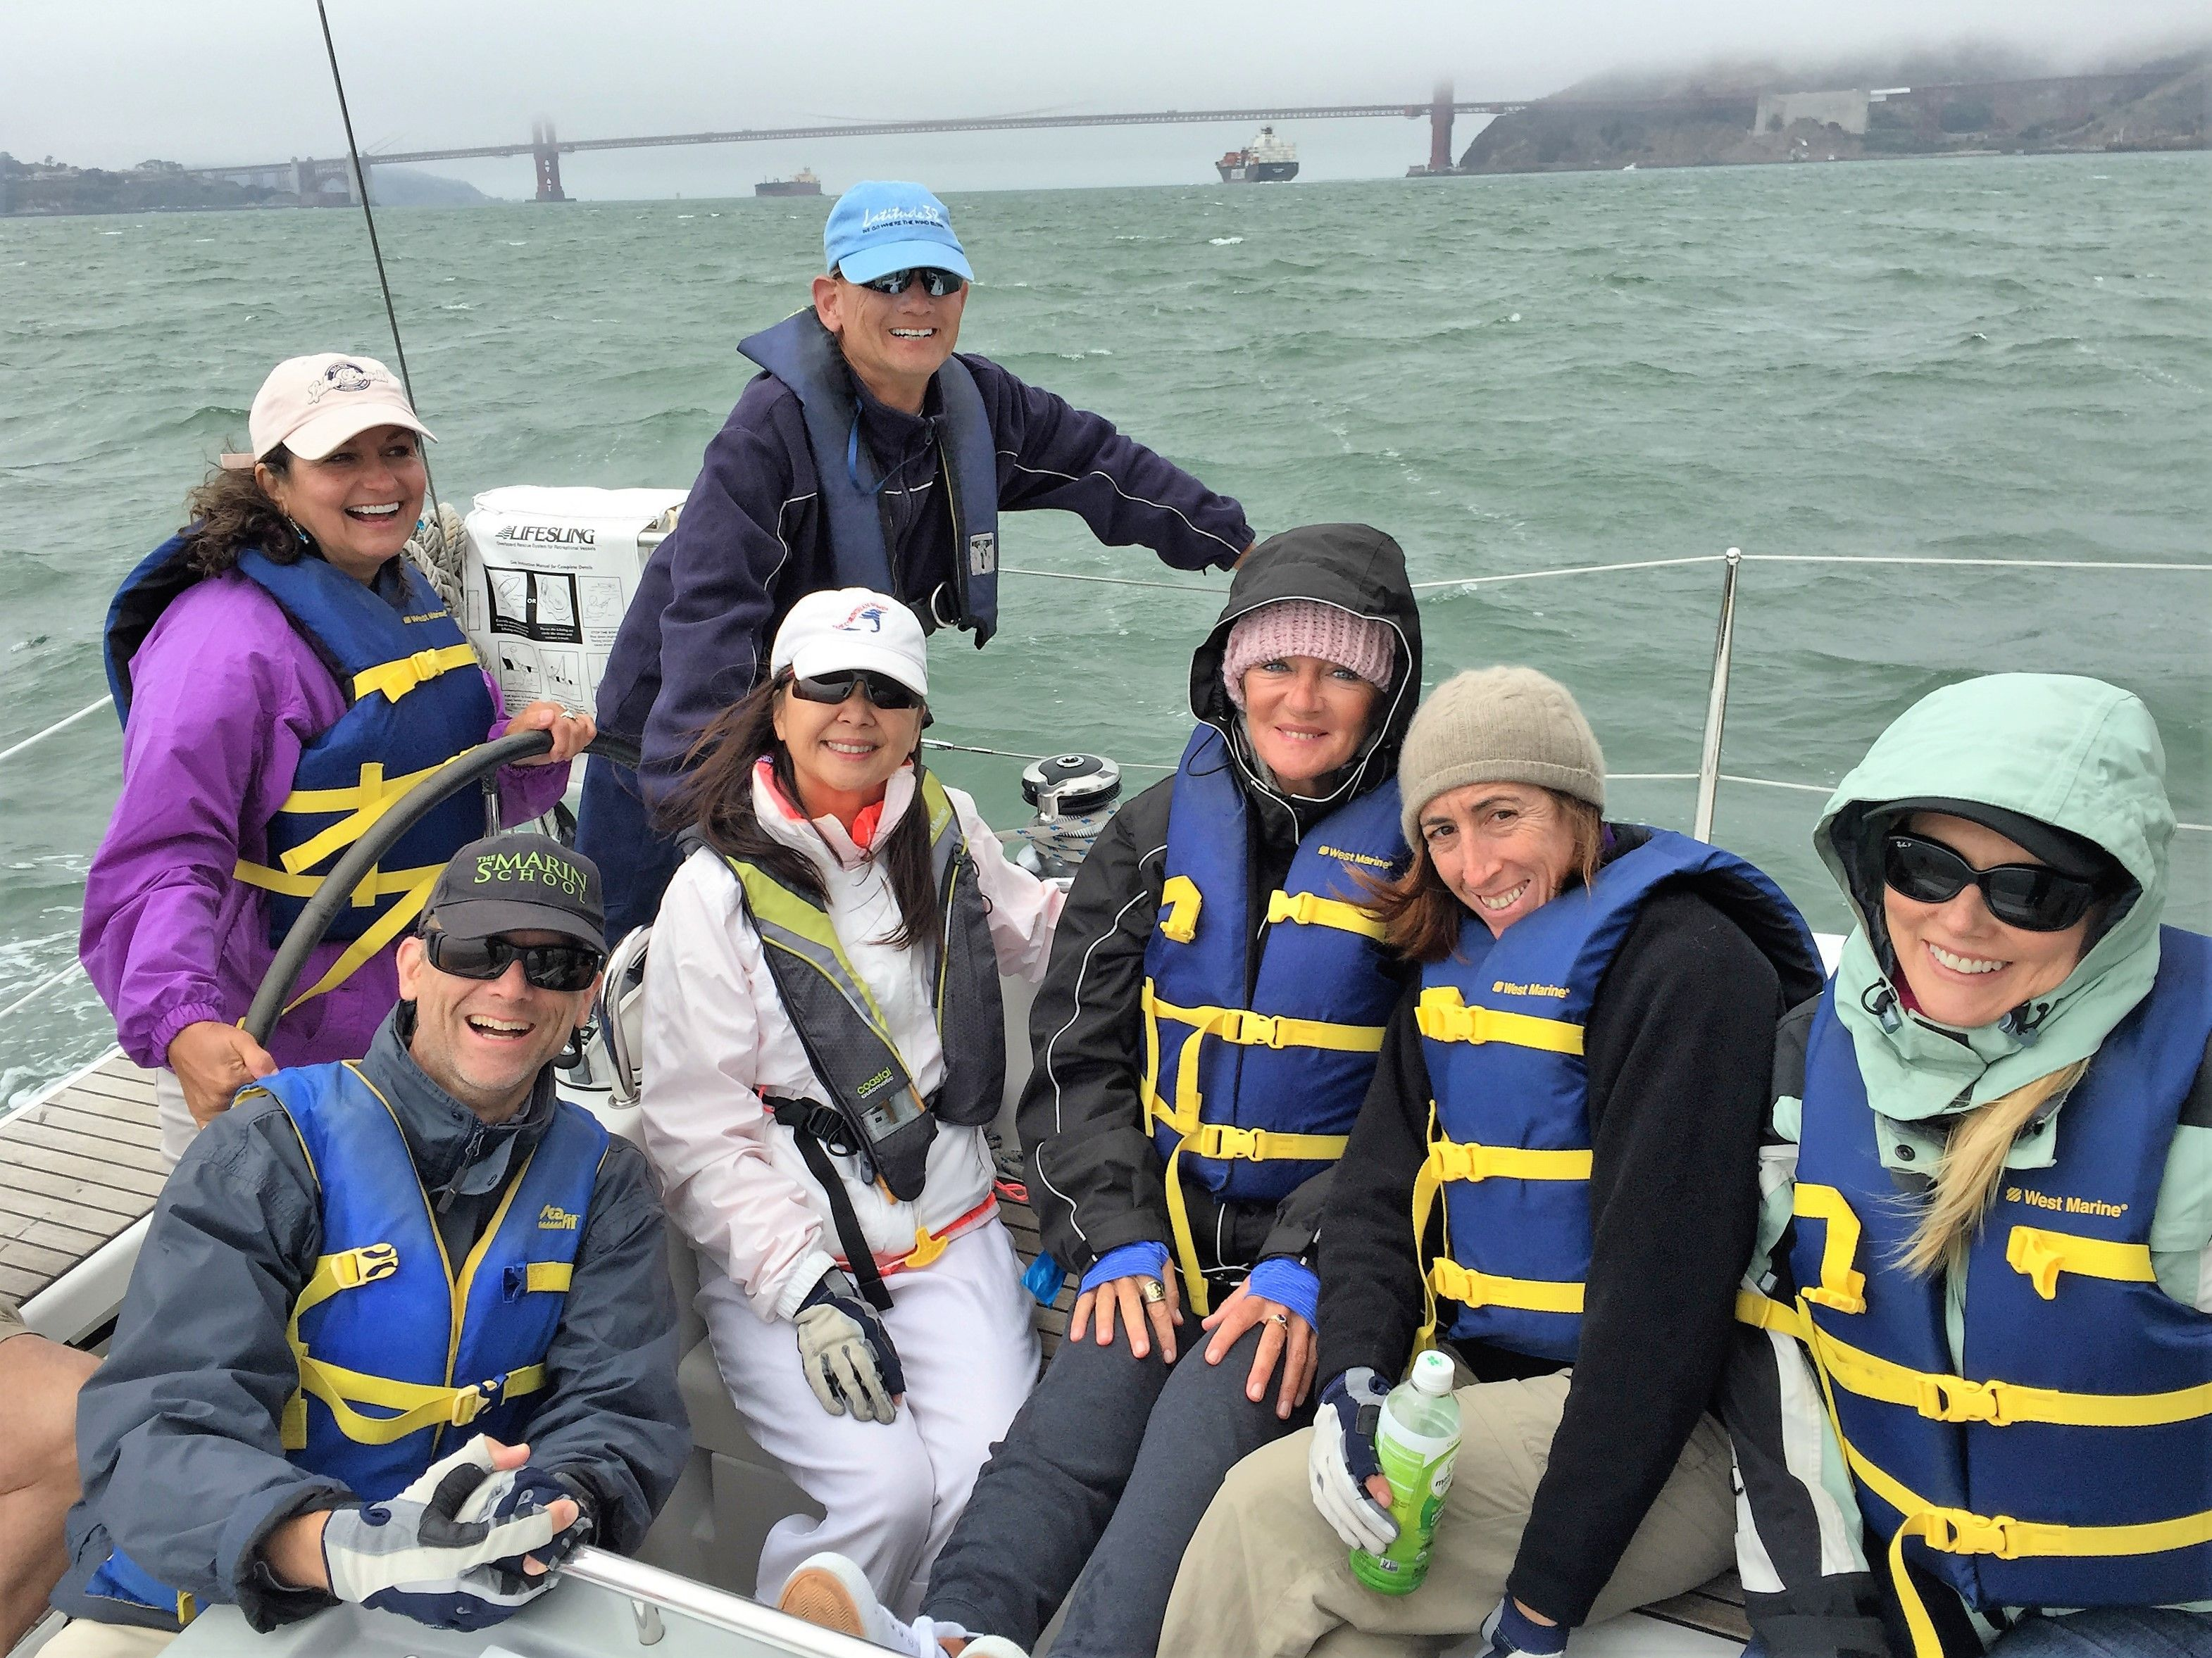 North Bay Sailing Meetup Group